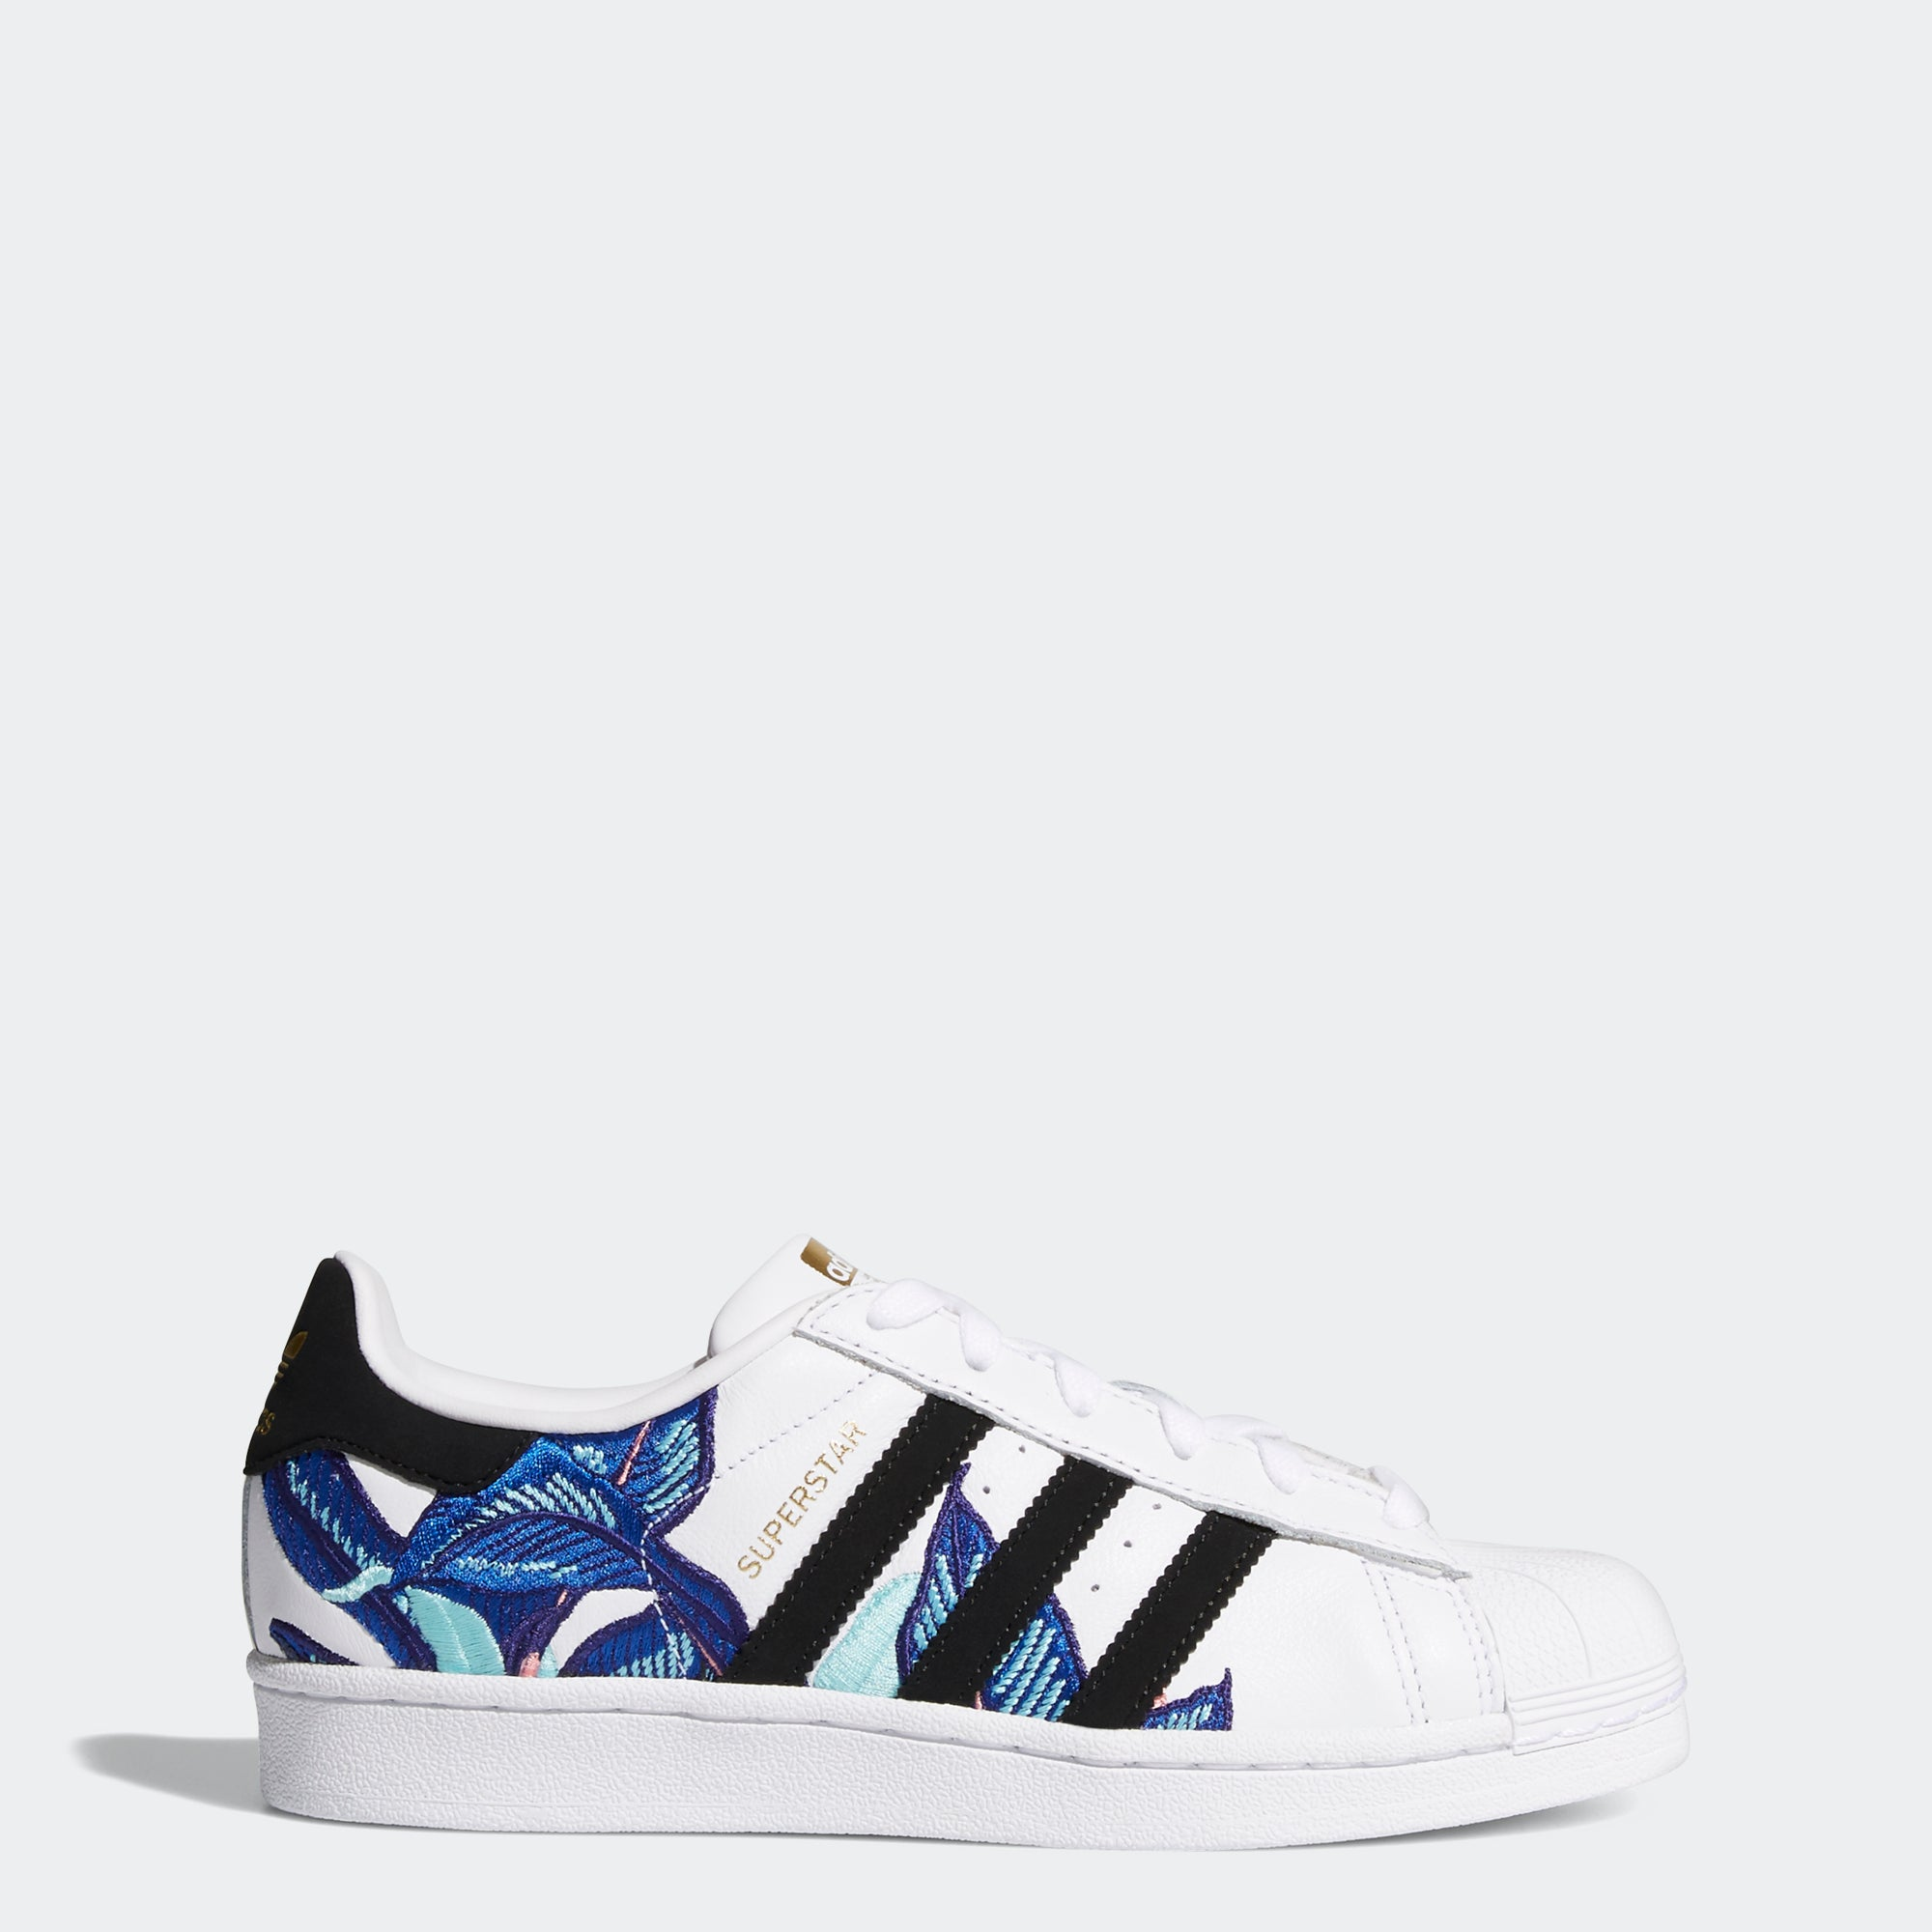 Women s Adidas Originals Superstar Shoes Cloud White Leafy B28014 ... d2790fa37